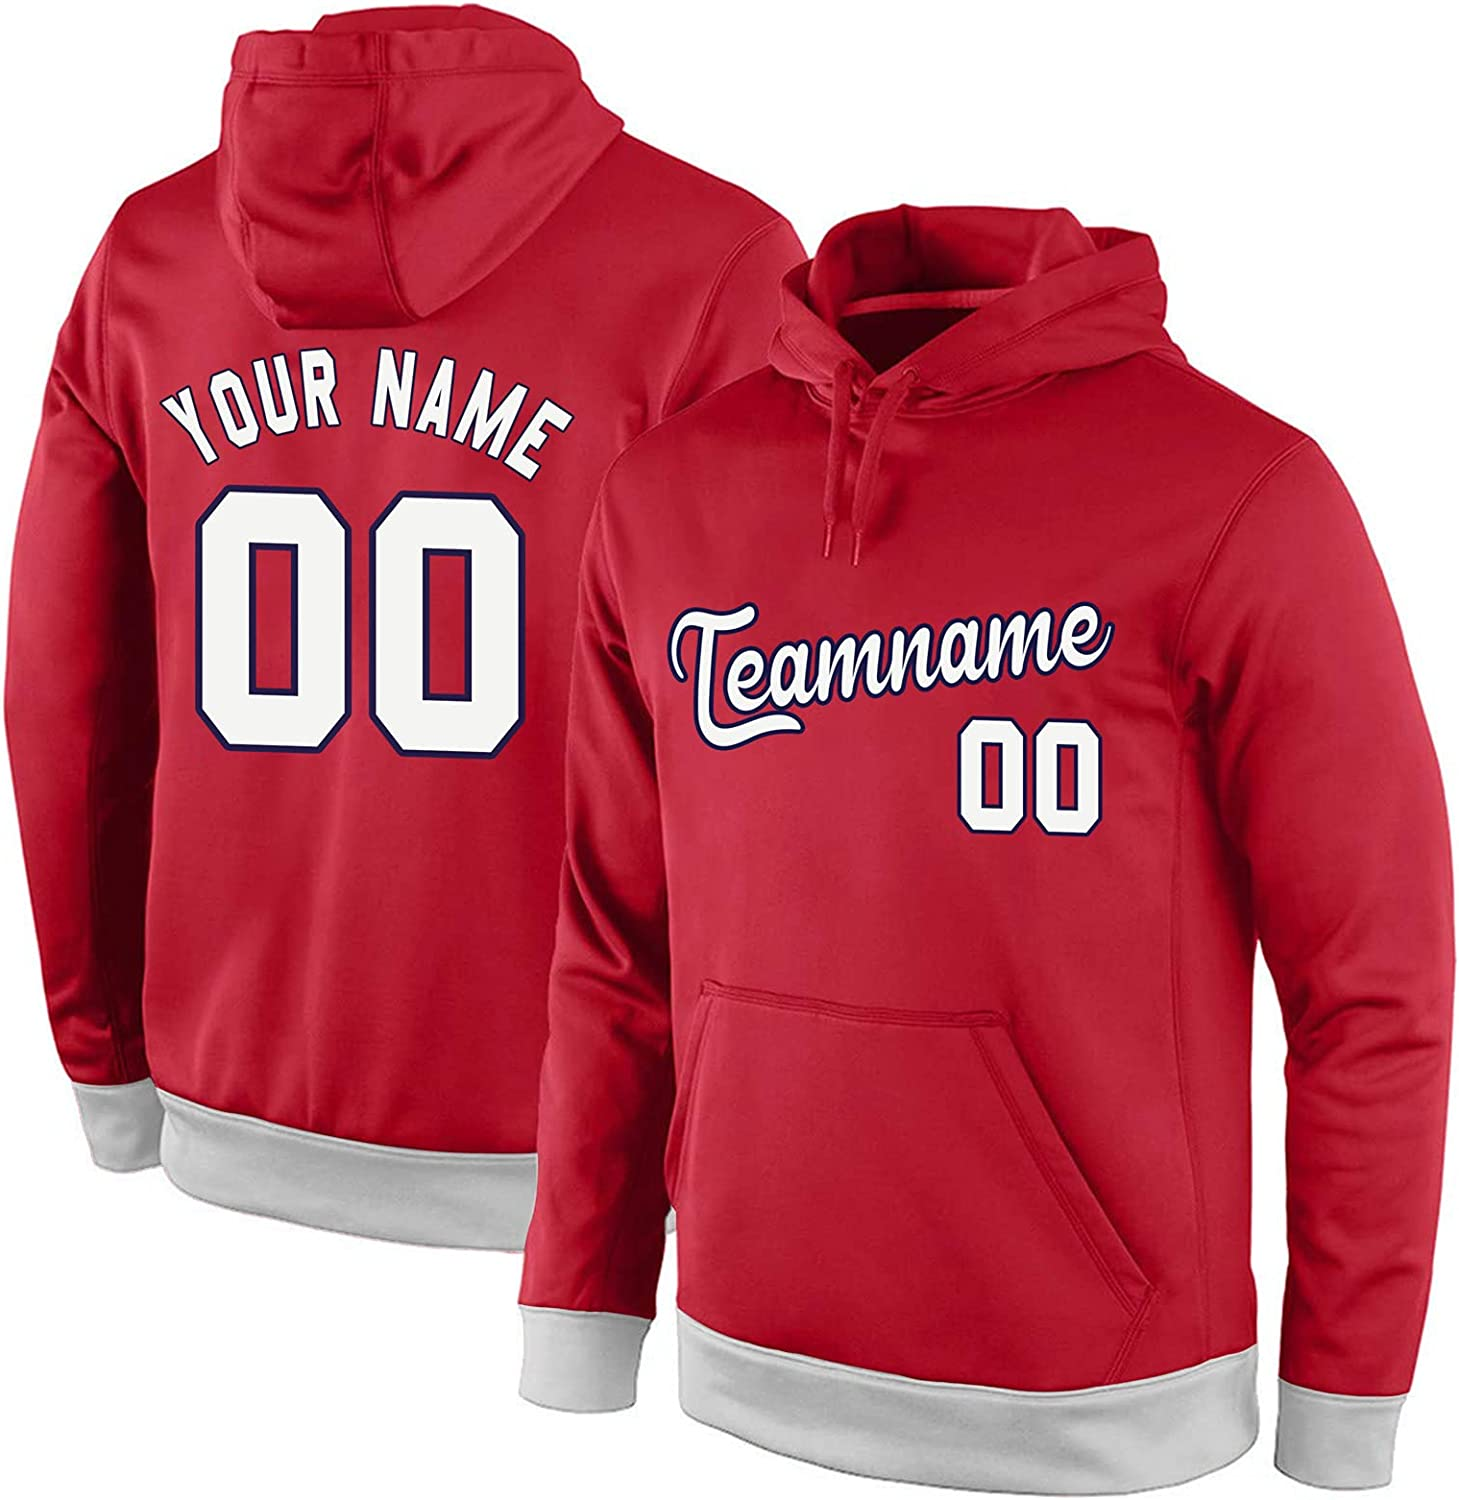 Custom Football Hoodie for Free shipping anywhere in the nation Men Youth Pers Add Your Number Name Boston Mall